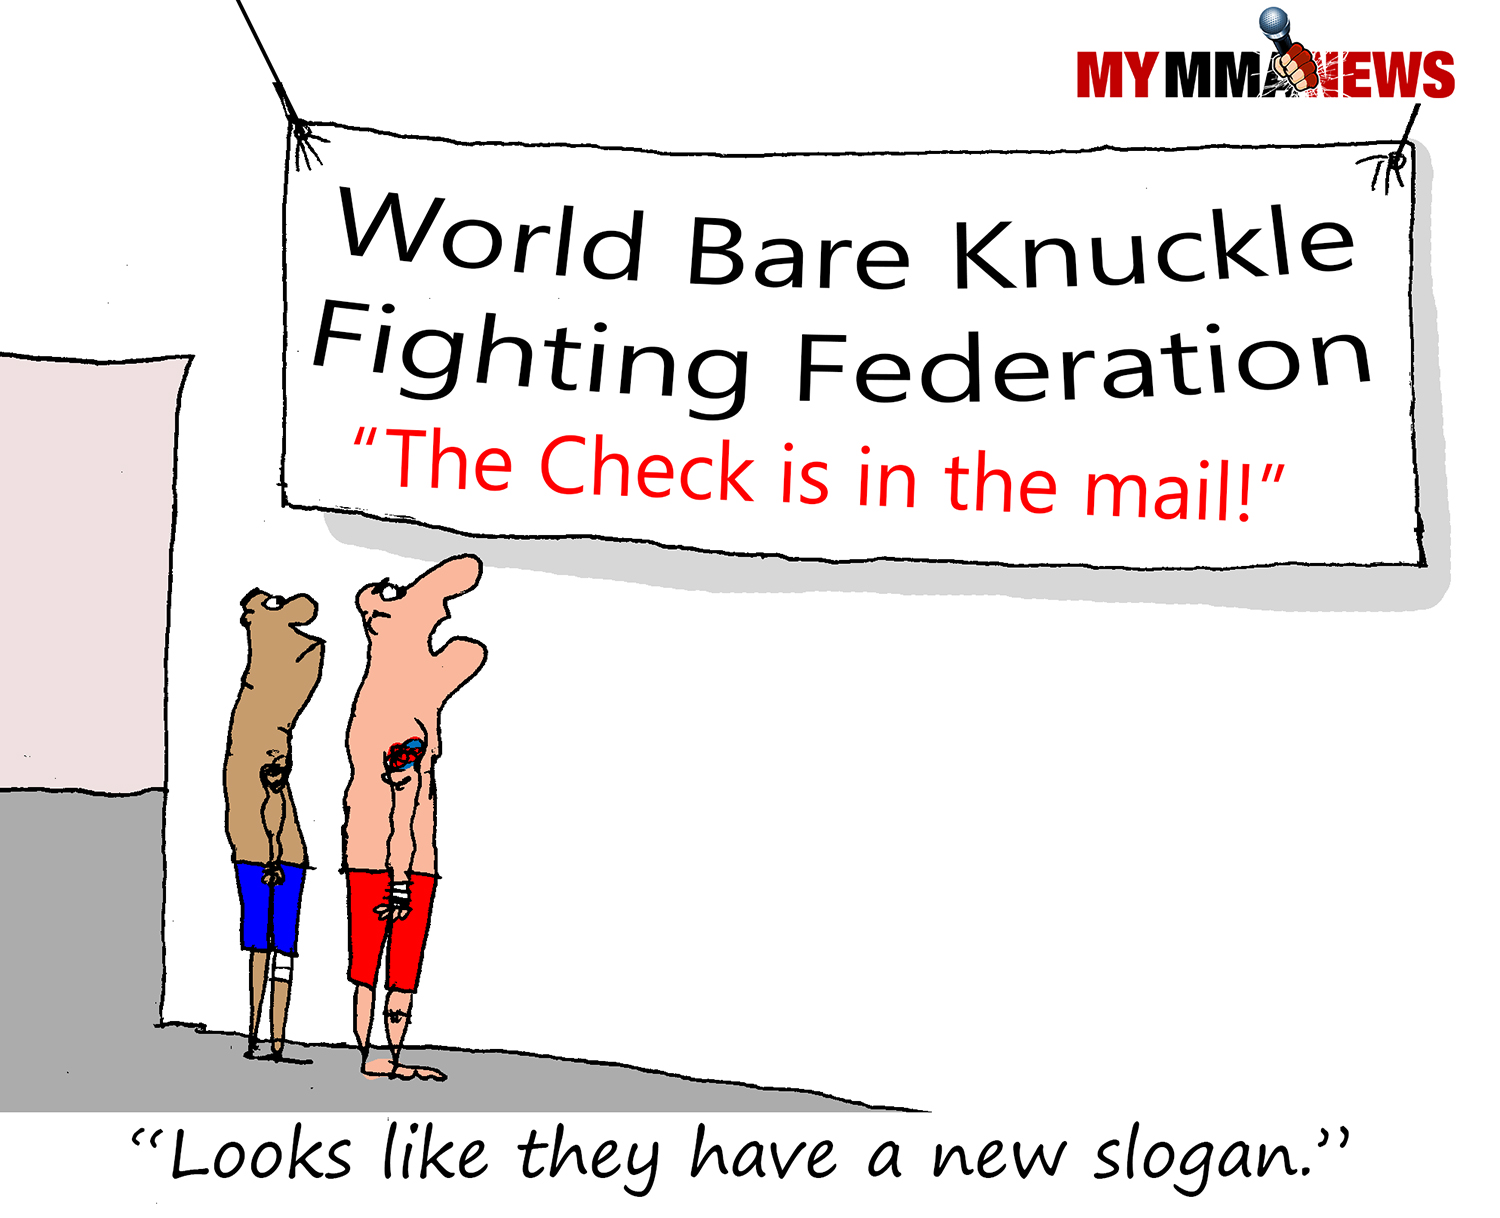 World Bare Knuckle Fighting Federation, WBKFF